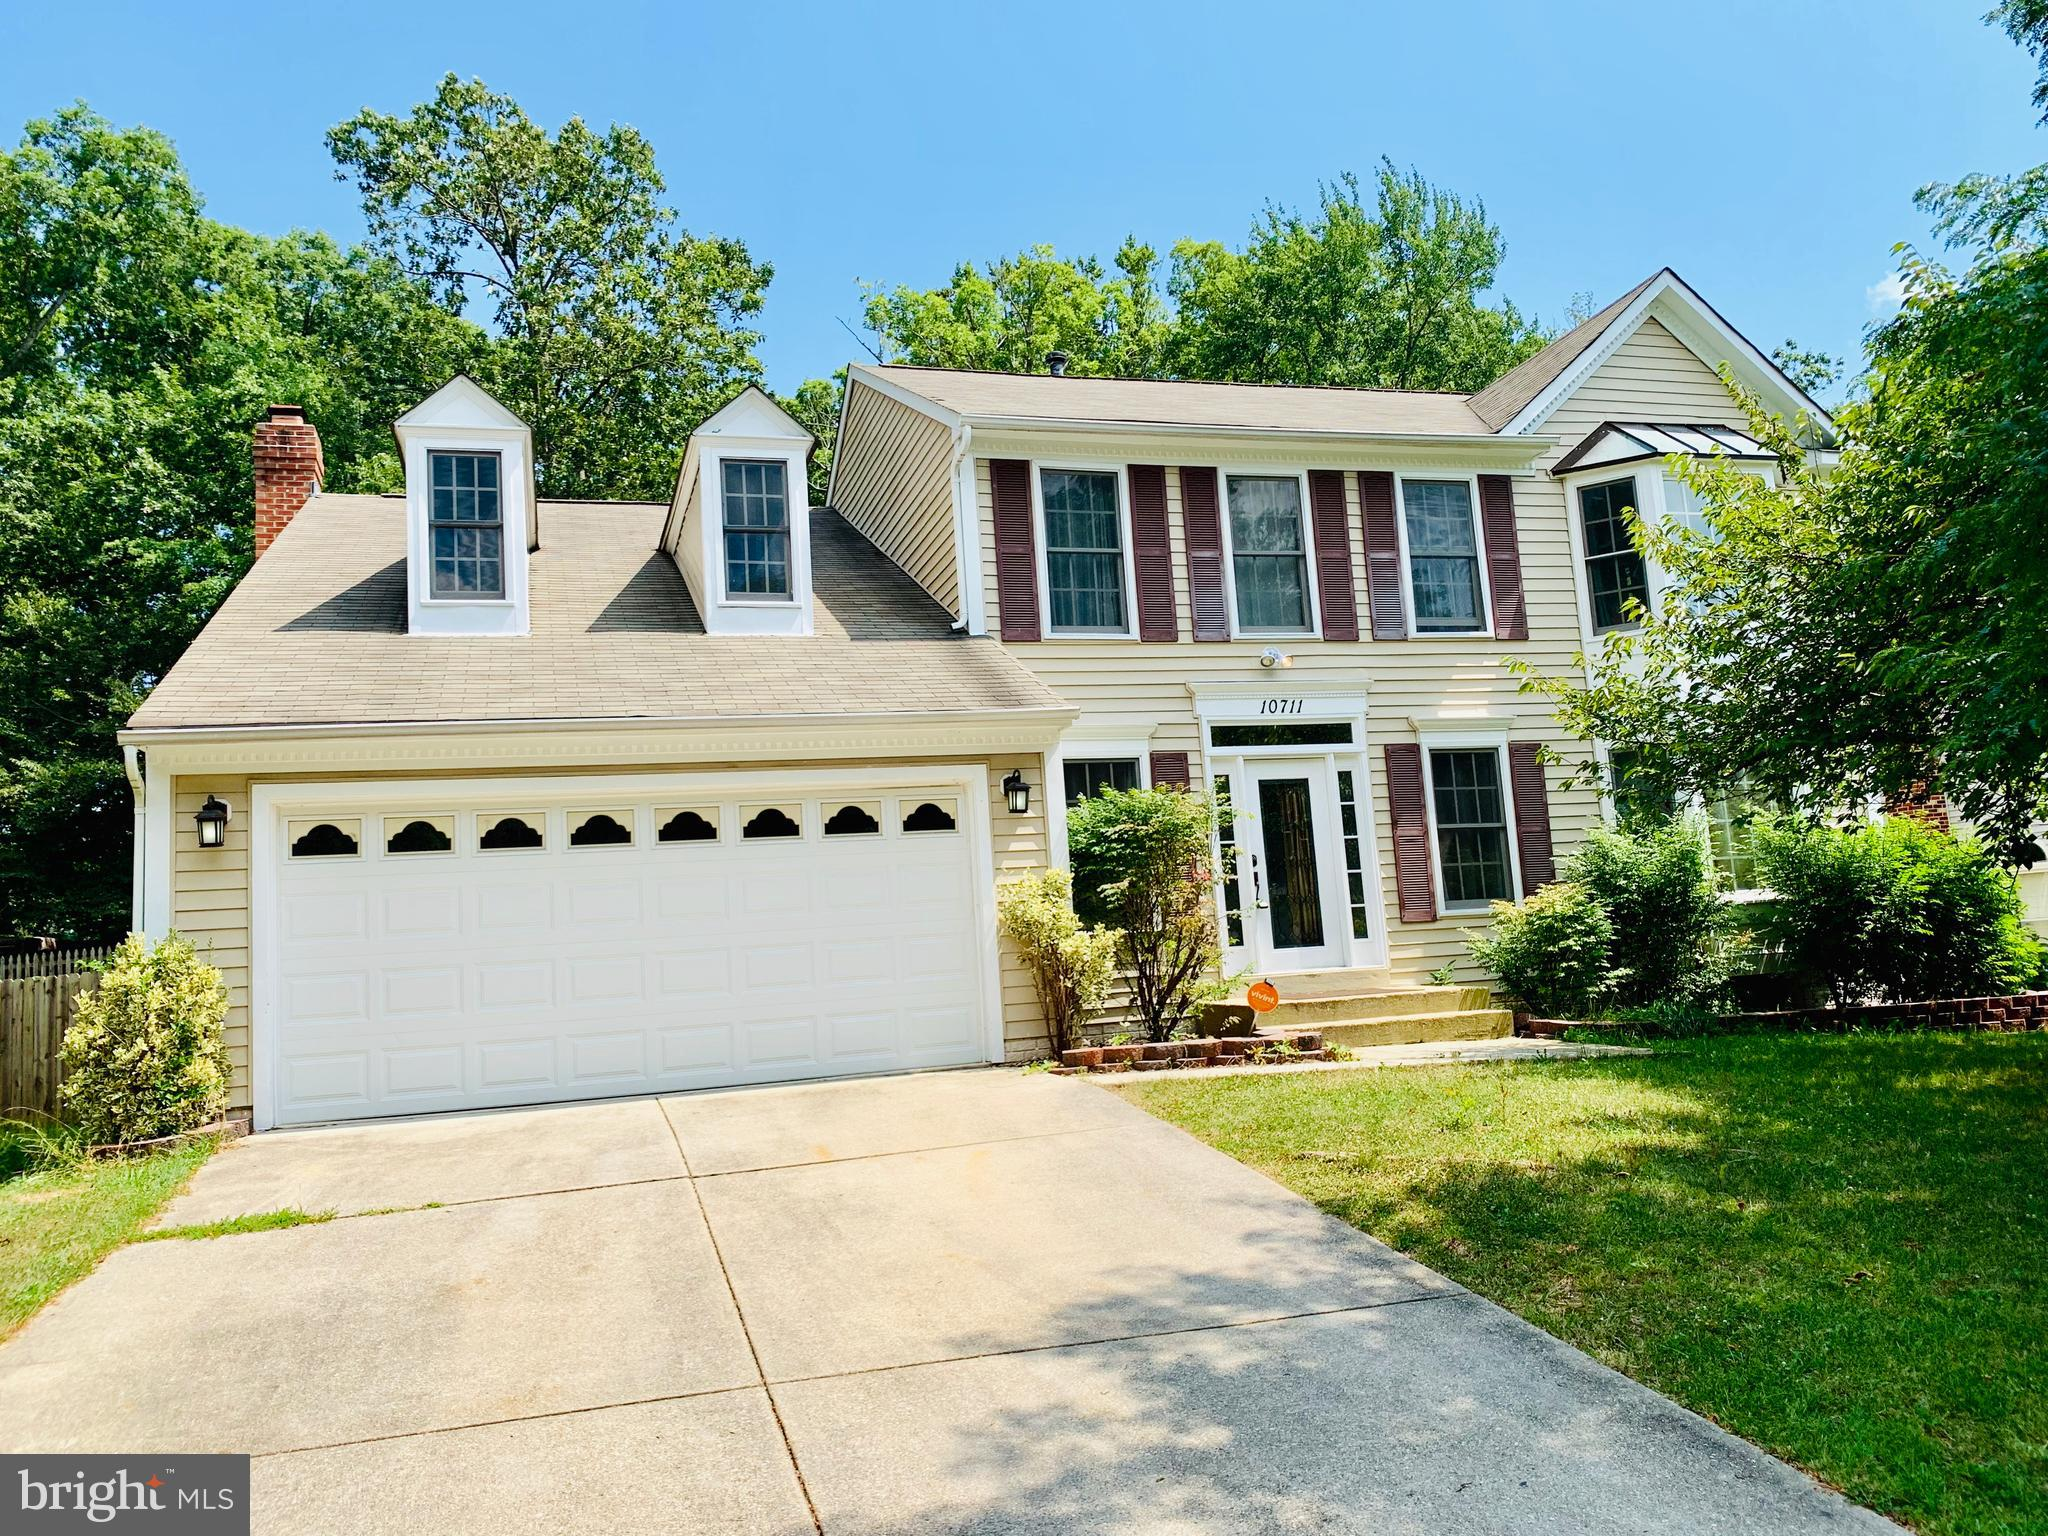 10711 BAILEY DRIVE, CHELTENHAM, MD 20623